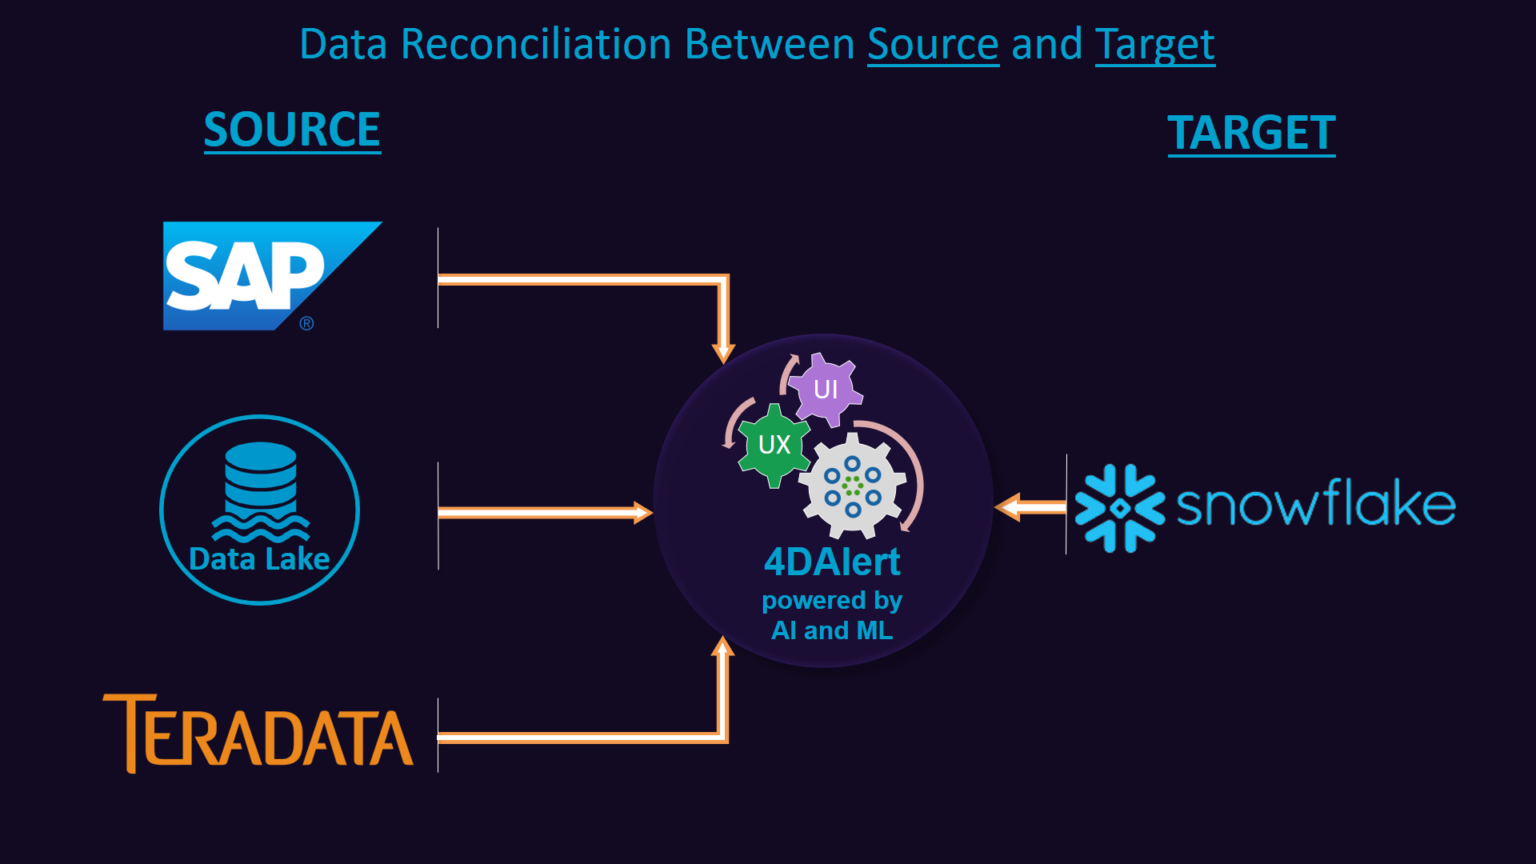 Data Reconciliation Between Source and Target